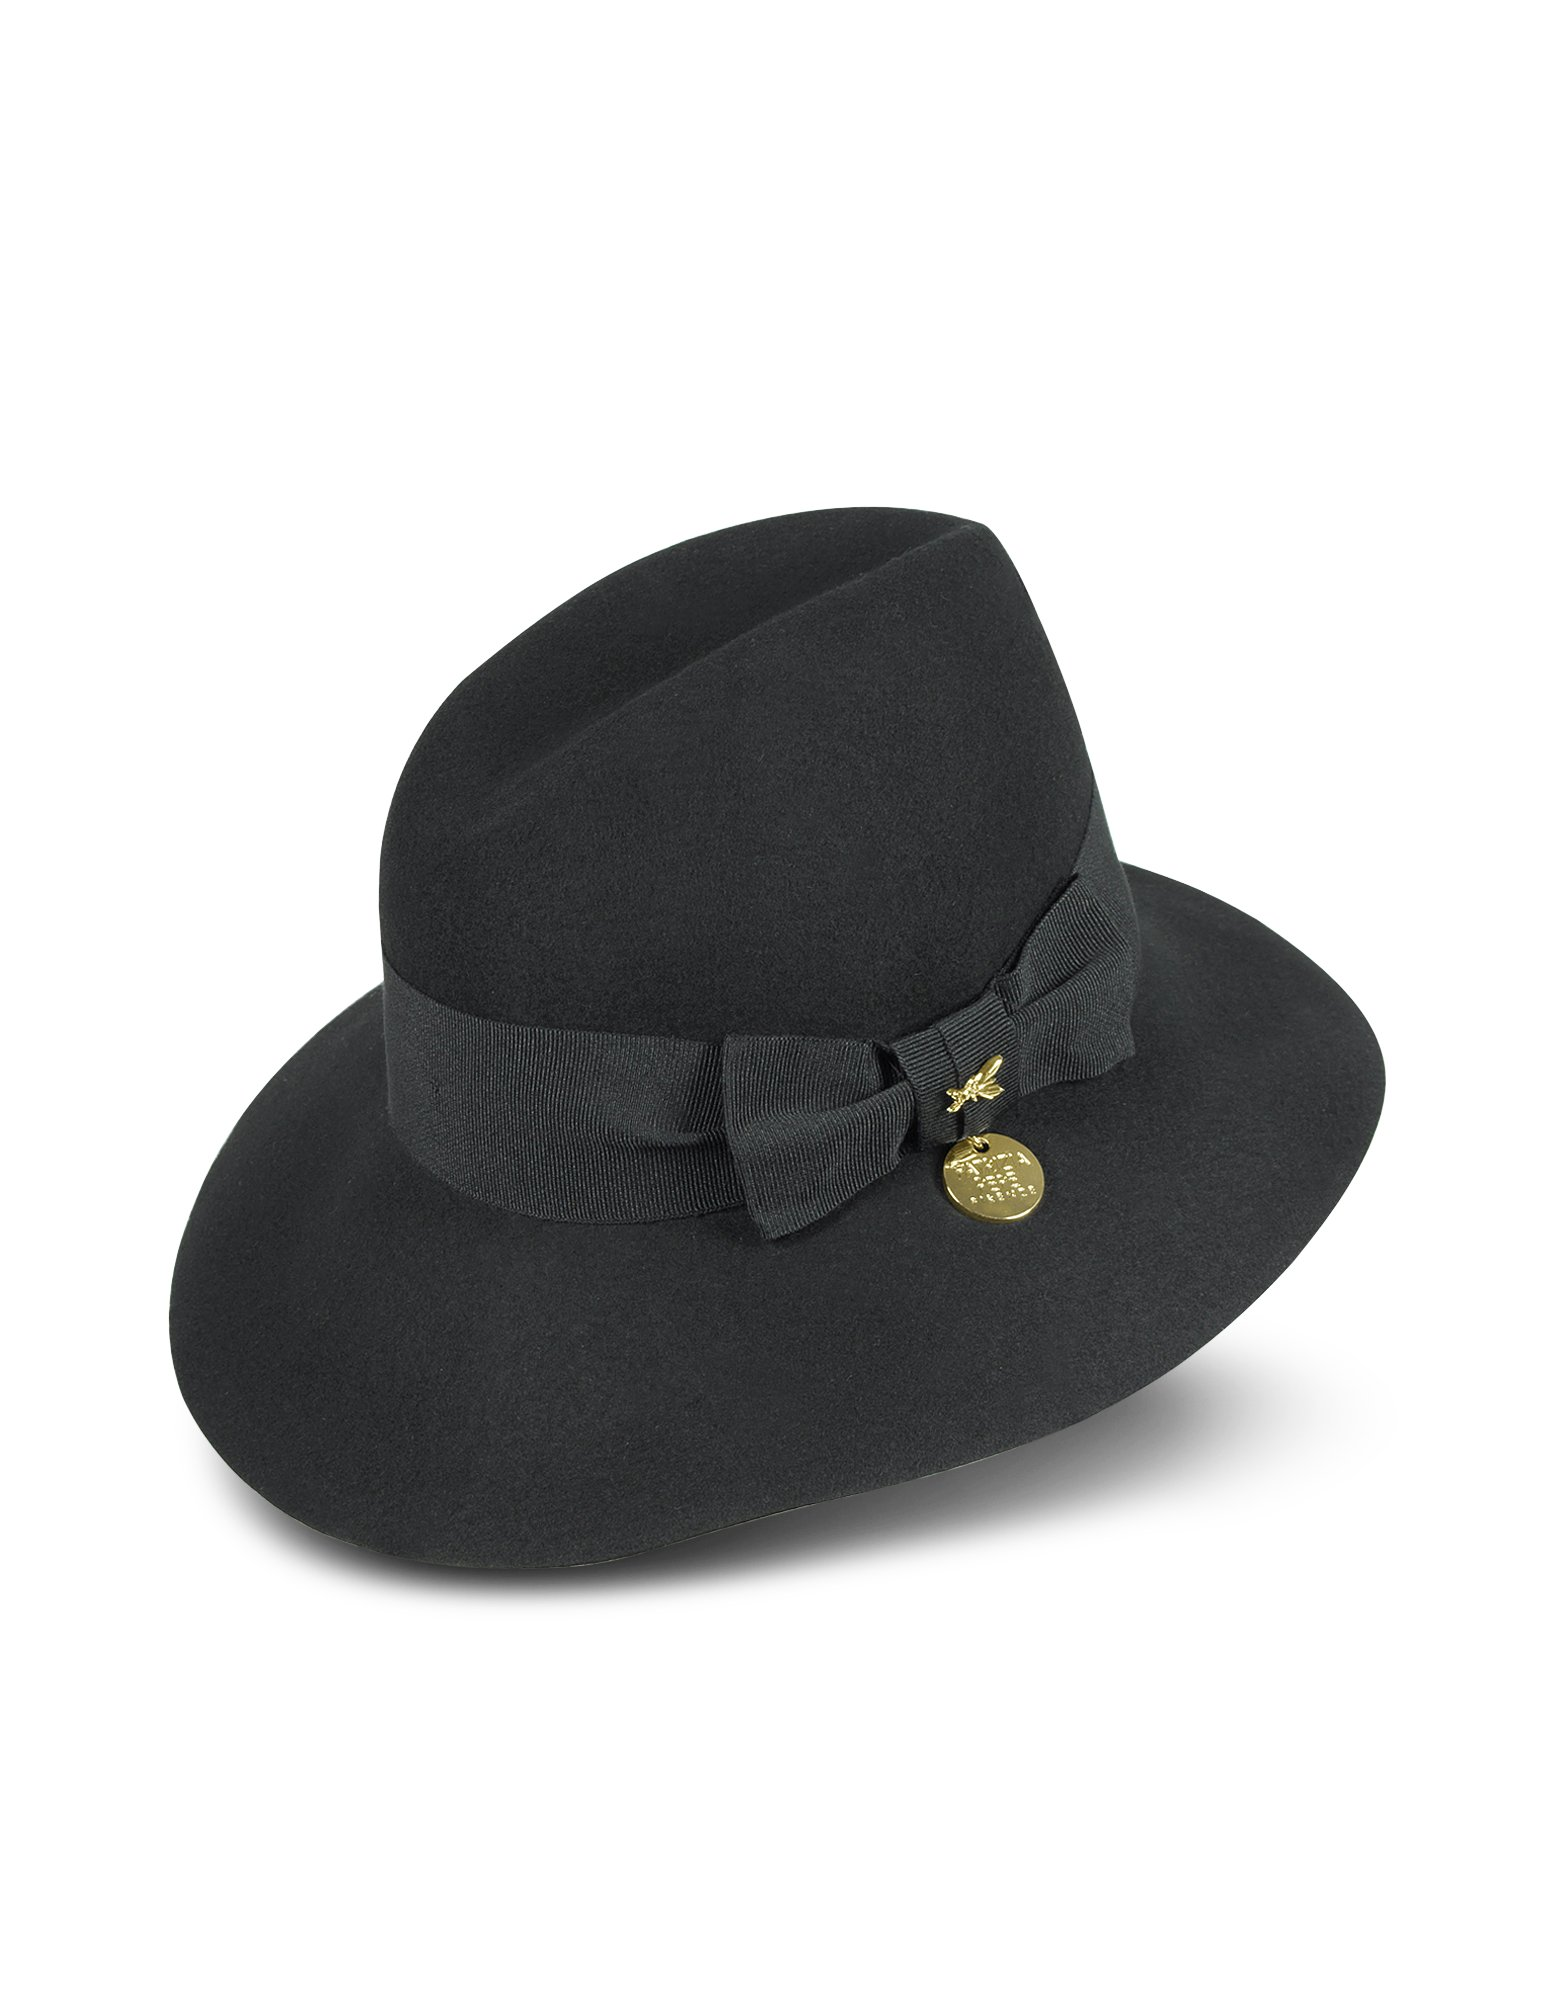 ab28dc16016 Patrizia Pepe Womens Wool Hat with Grosgrain Bow in Black - Lyst